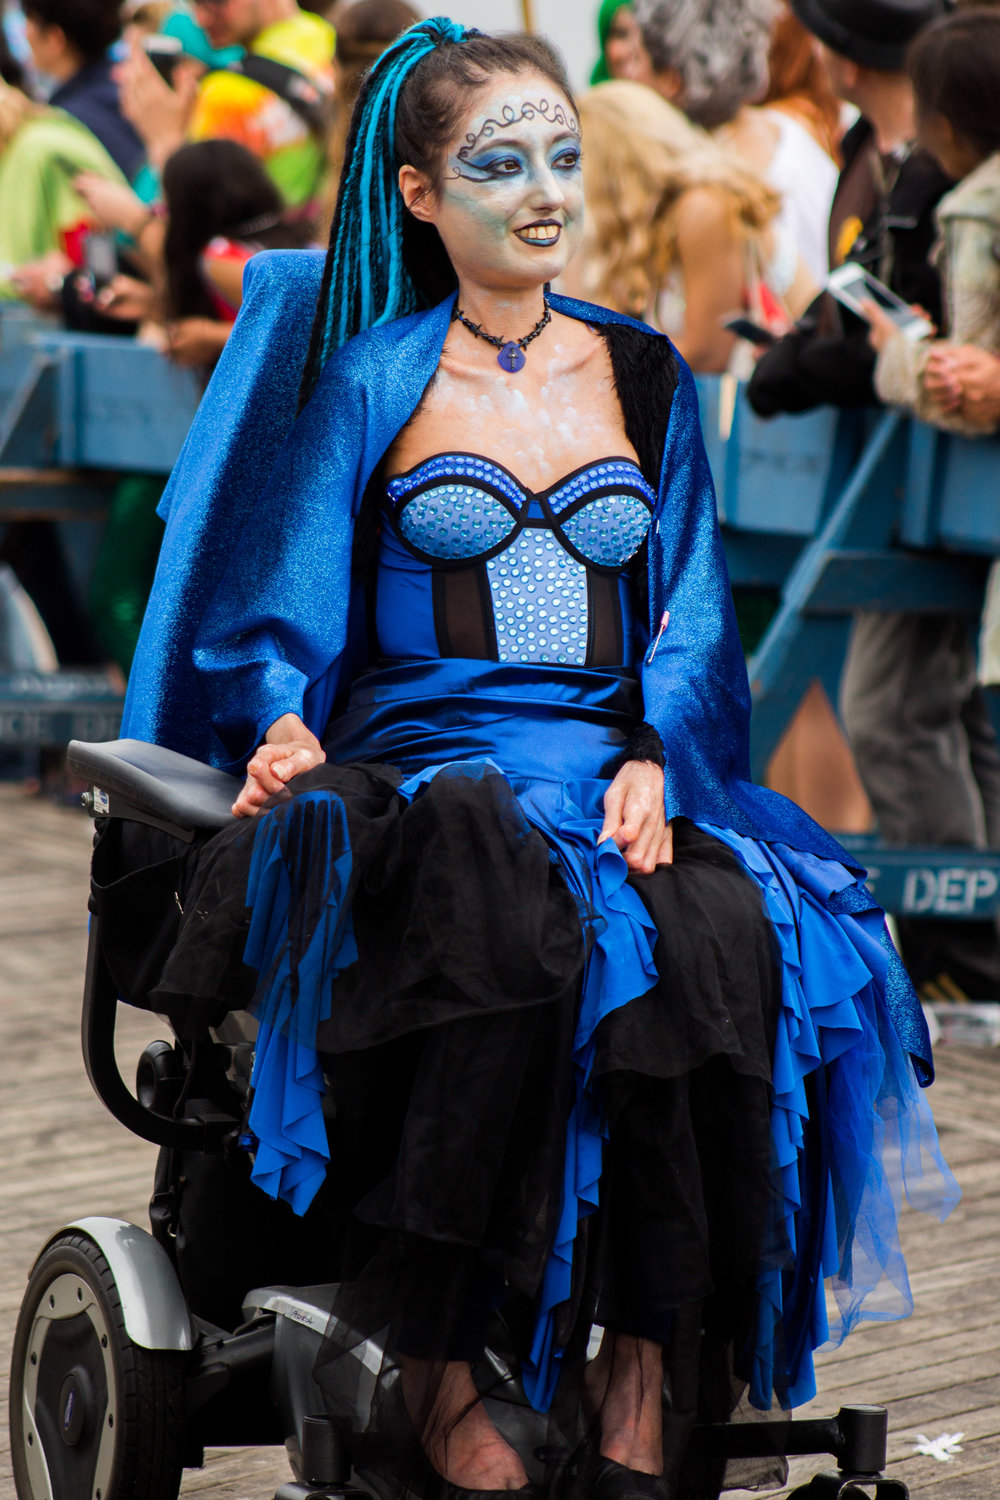 MermaidParade-51.jpg